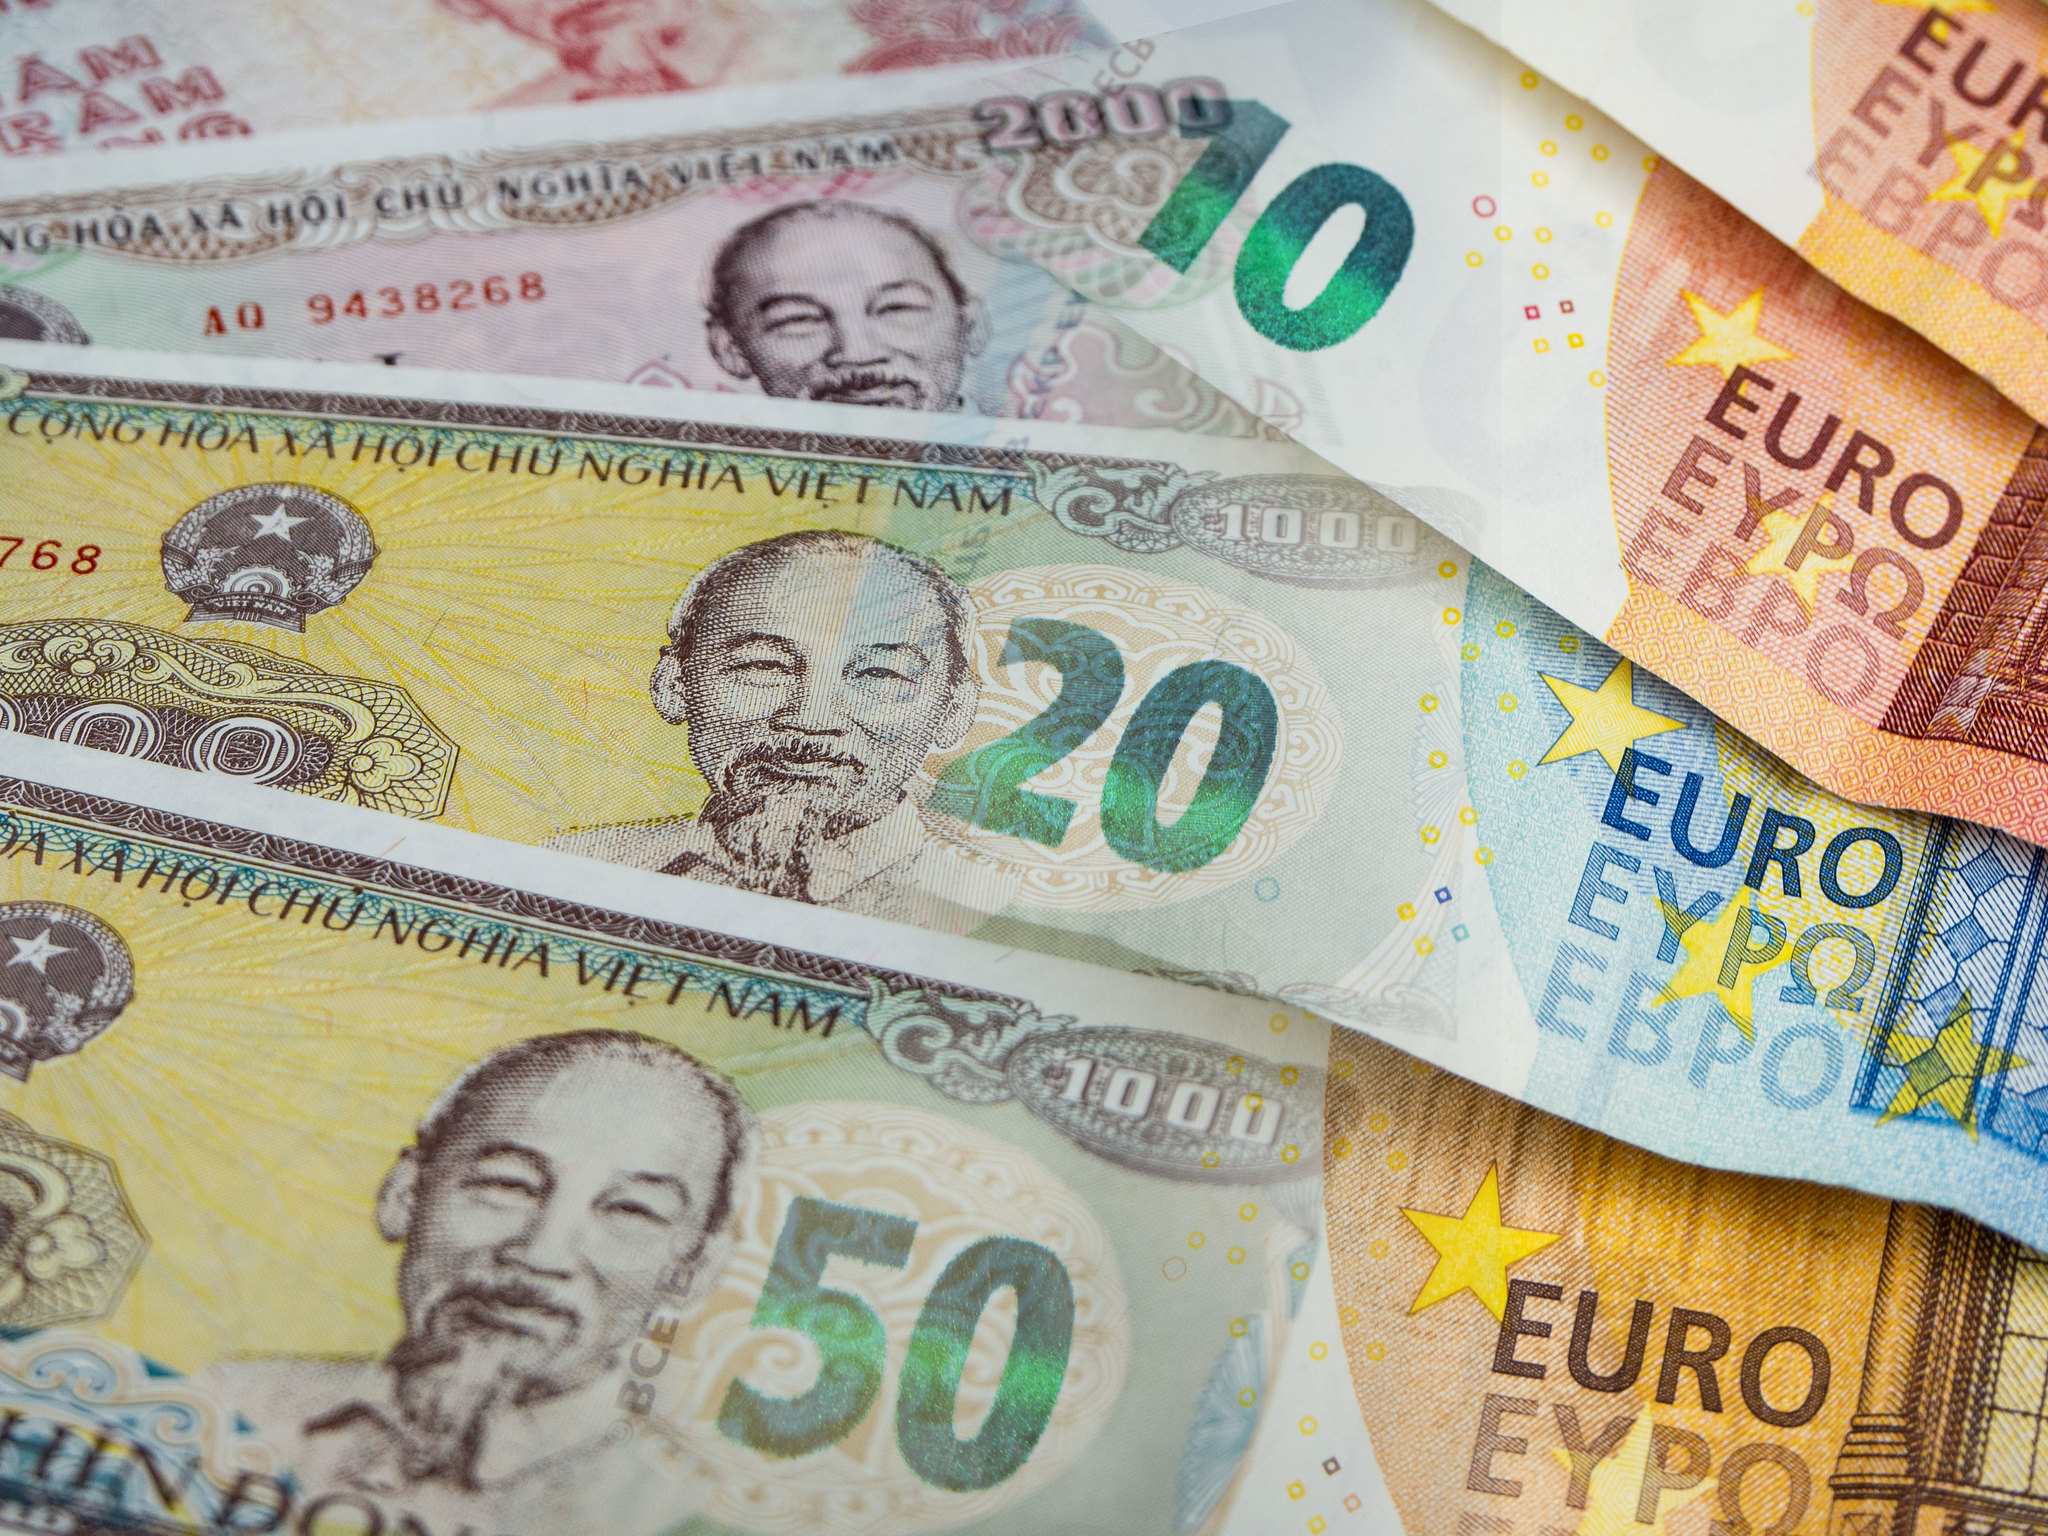 What is the Currency of Vietnam?